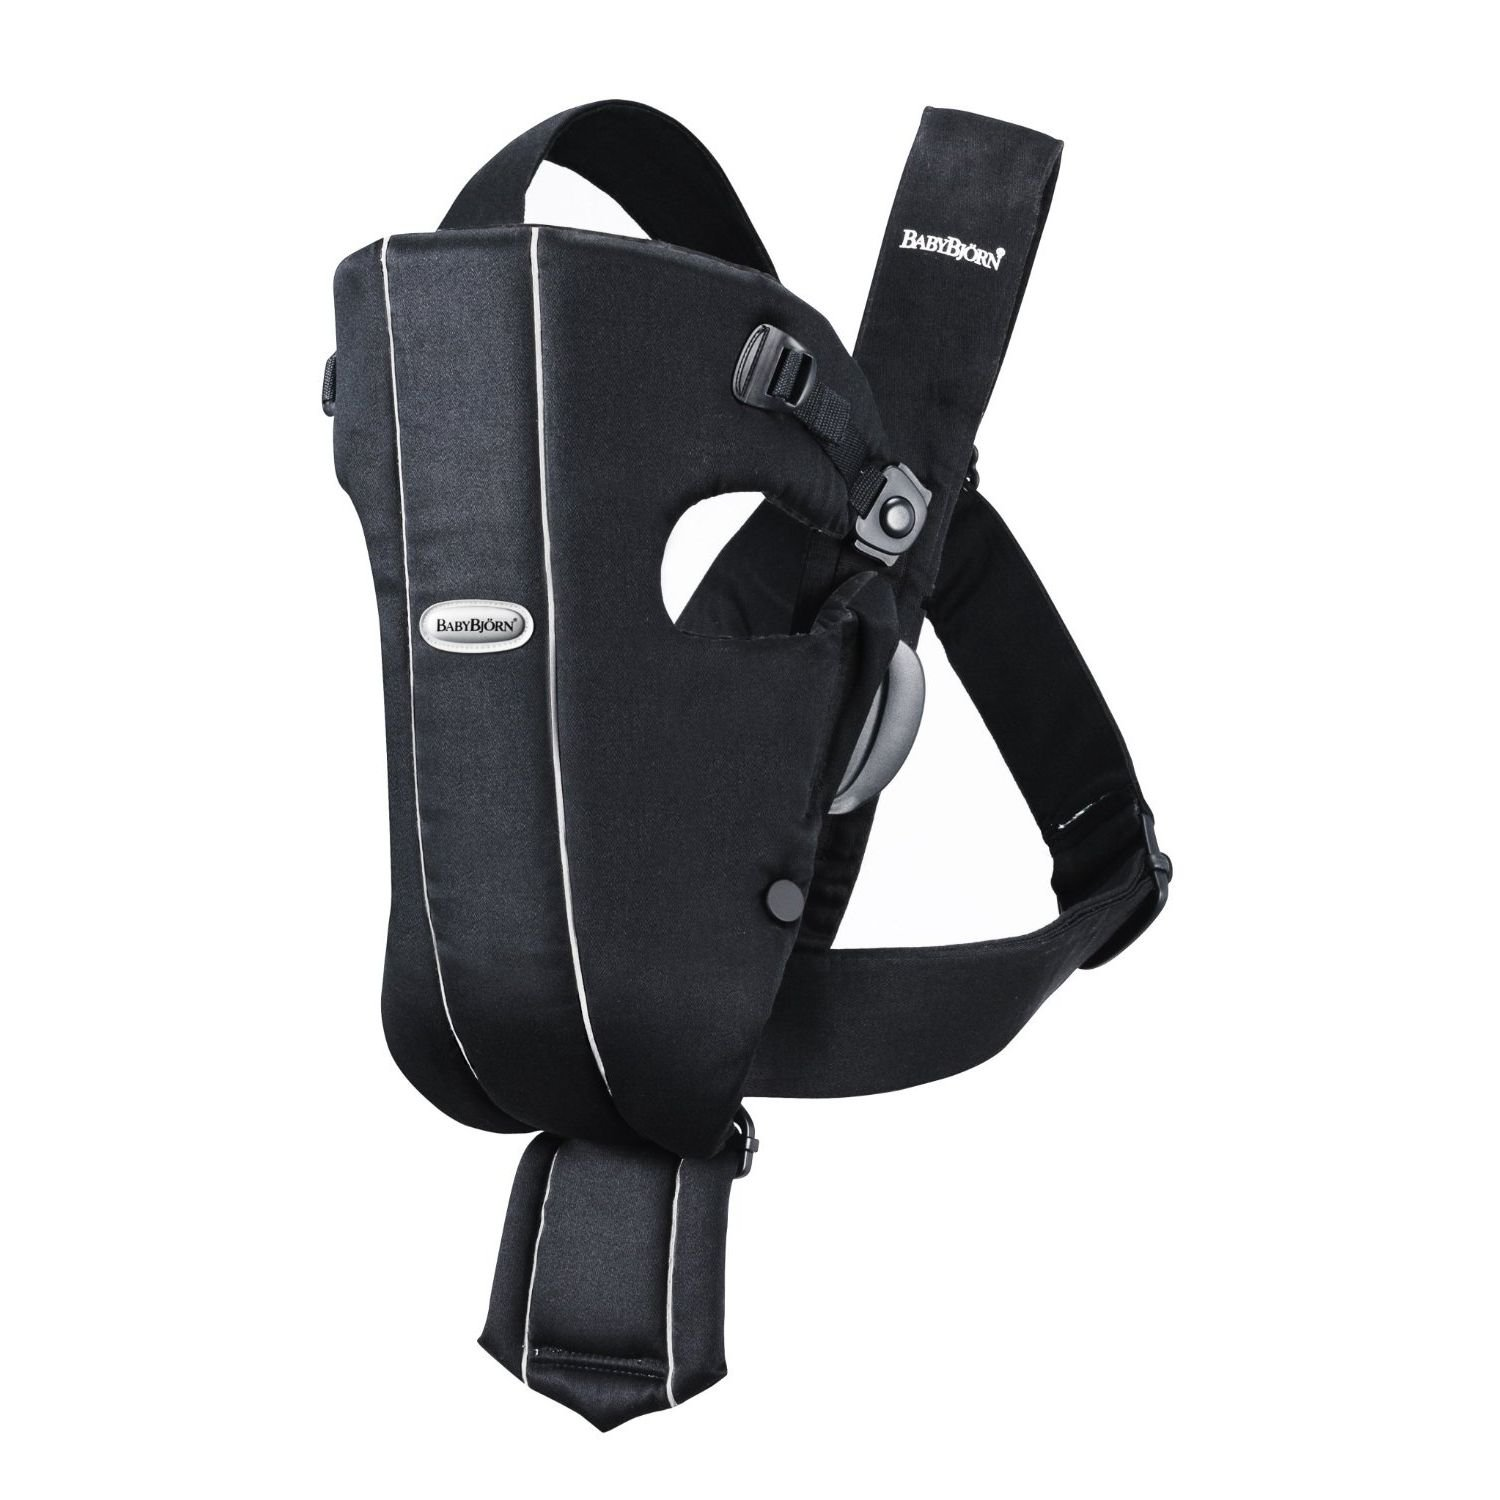 Baby Bjorn 023056US The Original Classic Baby Carrier – 0 Months 8-25 LBS Black